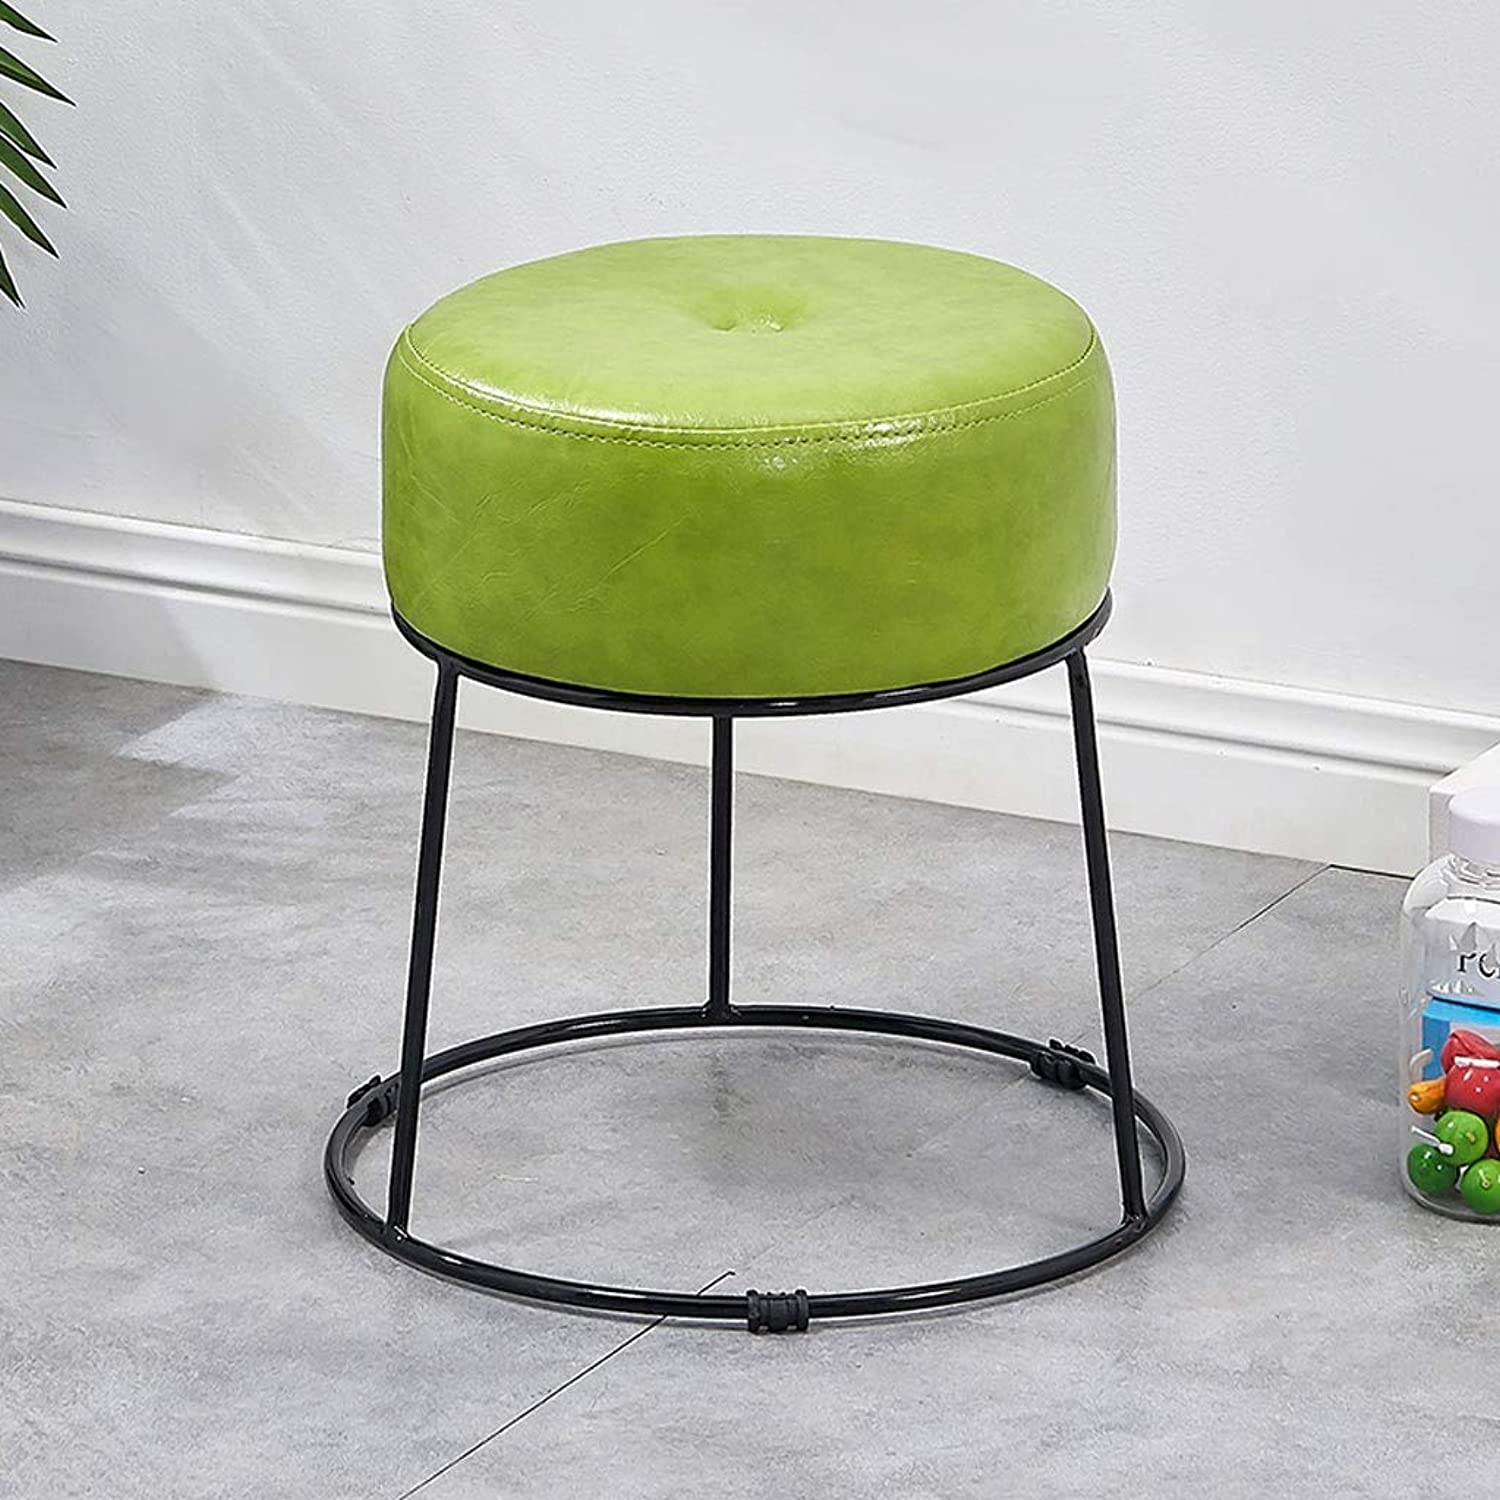 Household Metal Leather Chair,Modern Minimalist Dressing Stool,Round Four Footstool,High Rebound Sponge Filling - 29cmX38cm (color   Green)